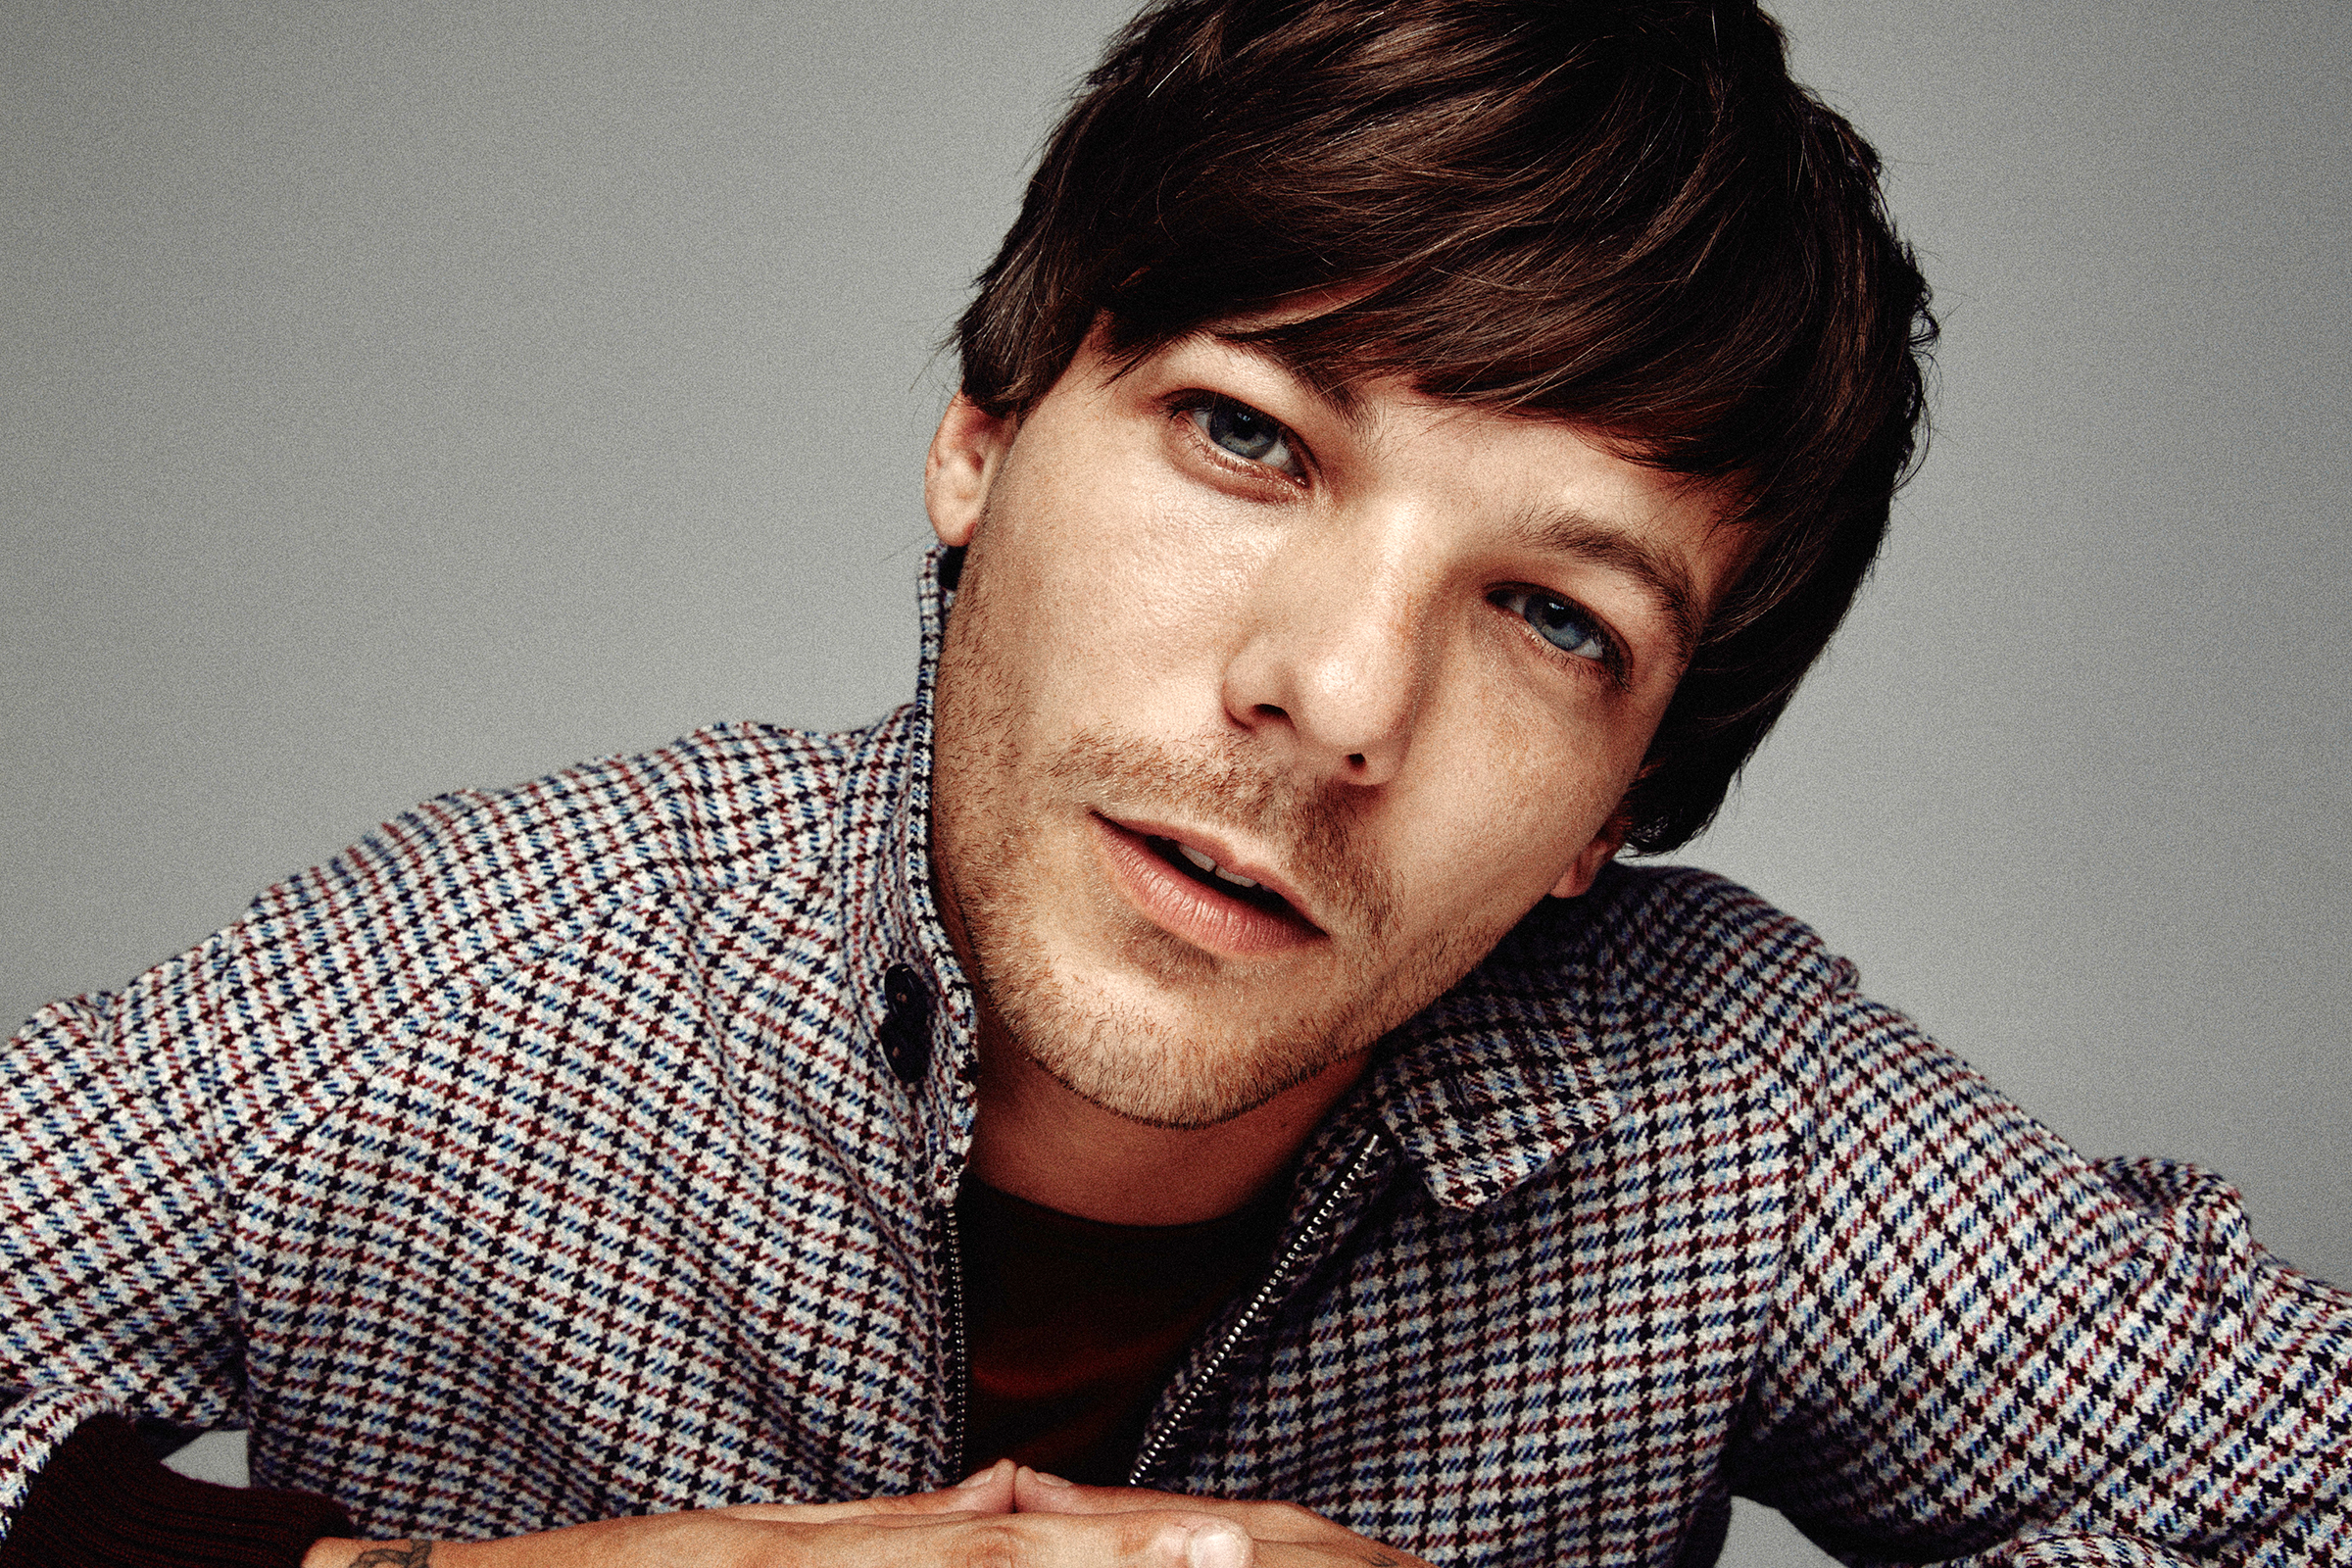 Louis Tomlinson Interview New Album Walls Life After One Direction Rolling Stone